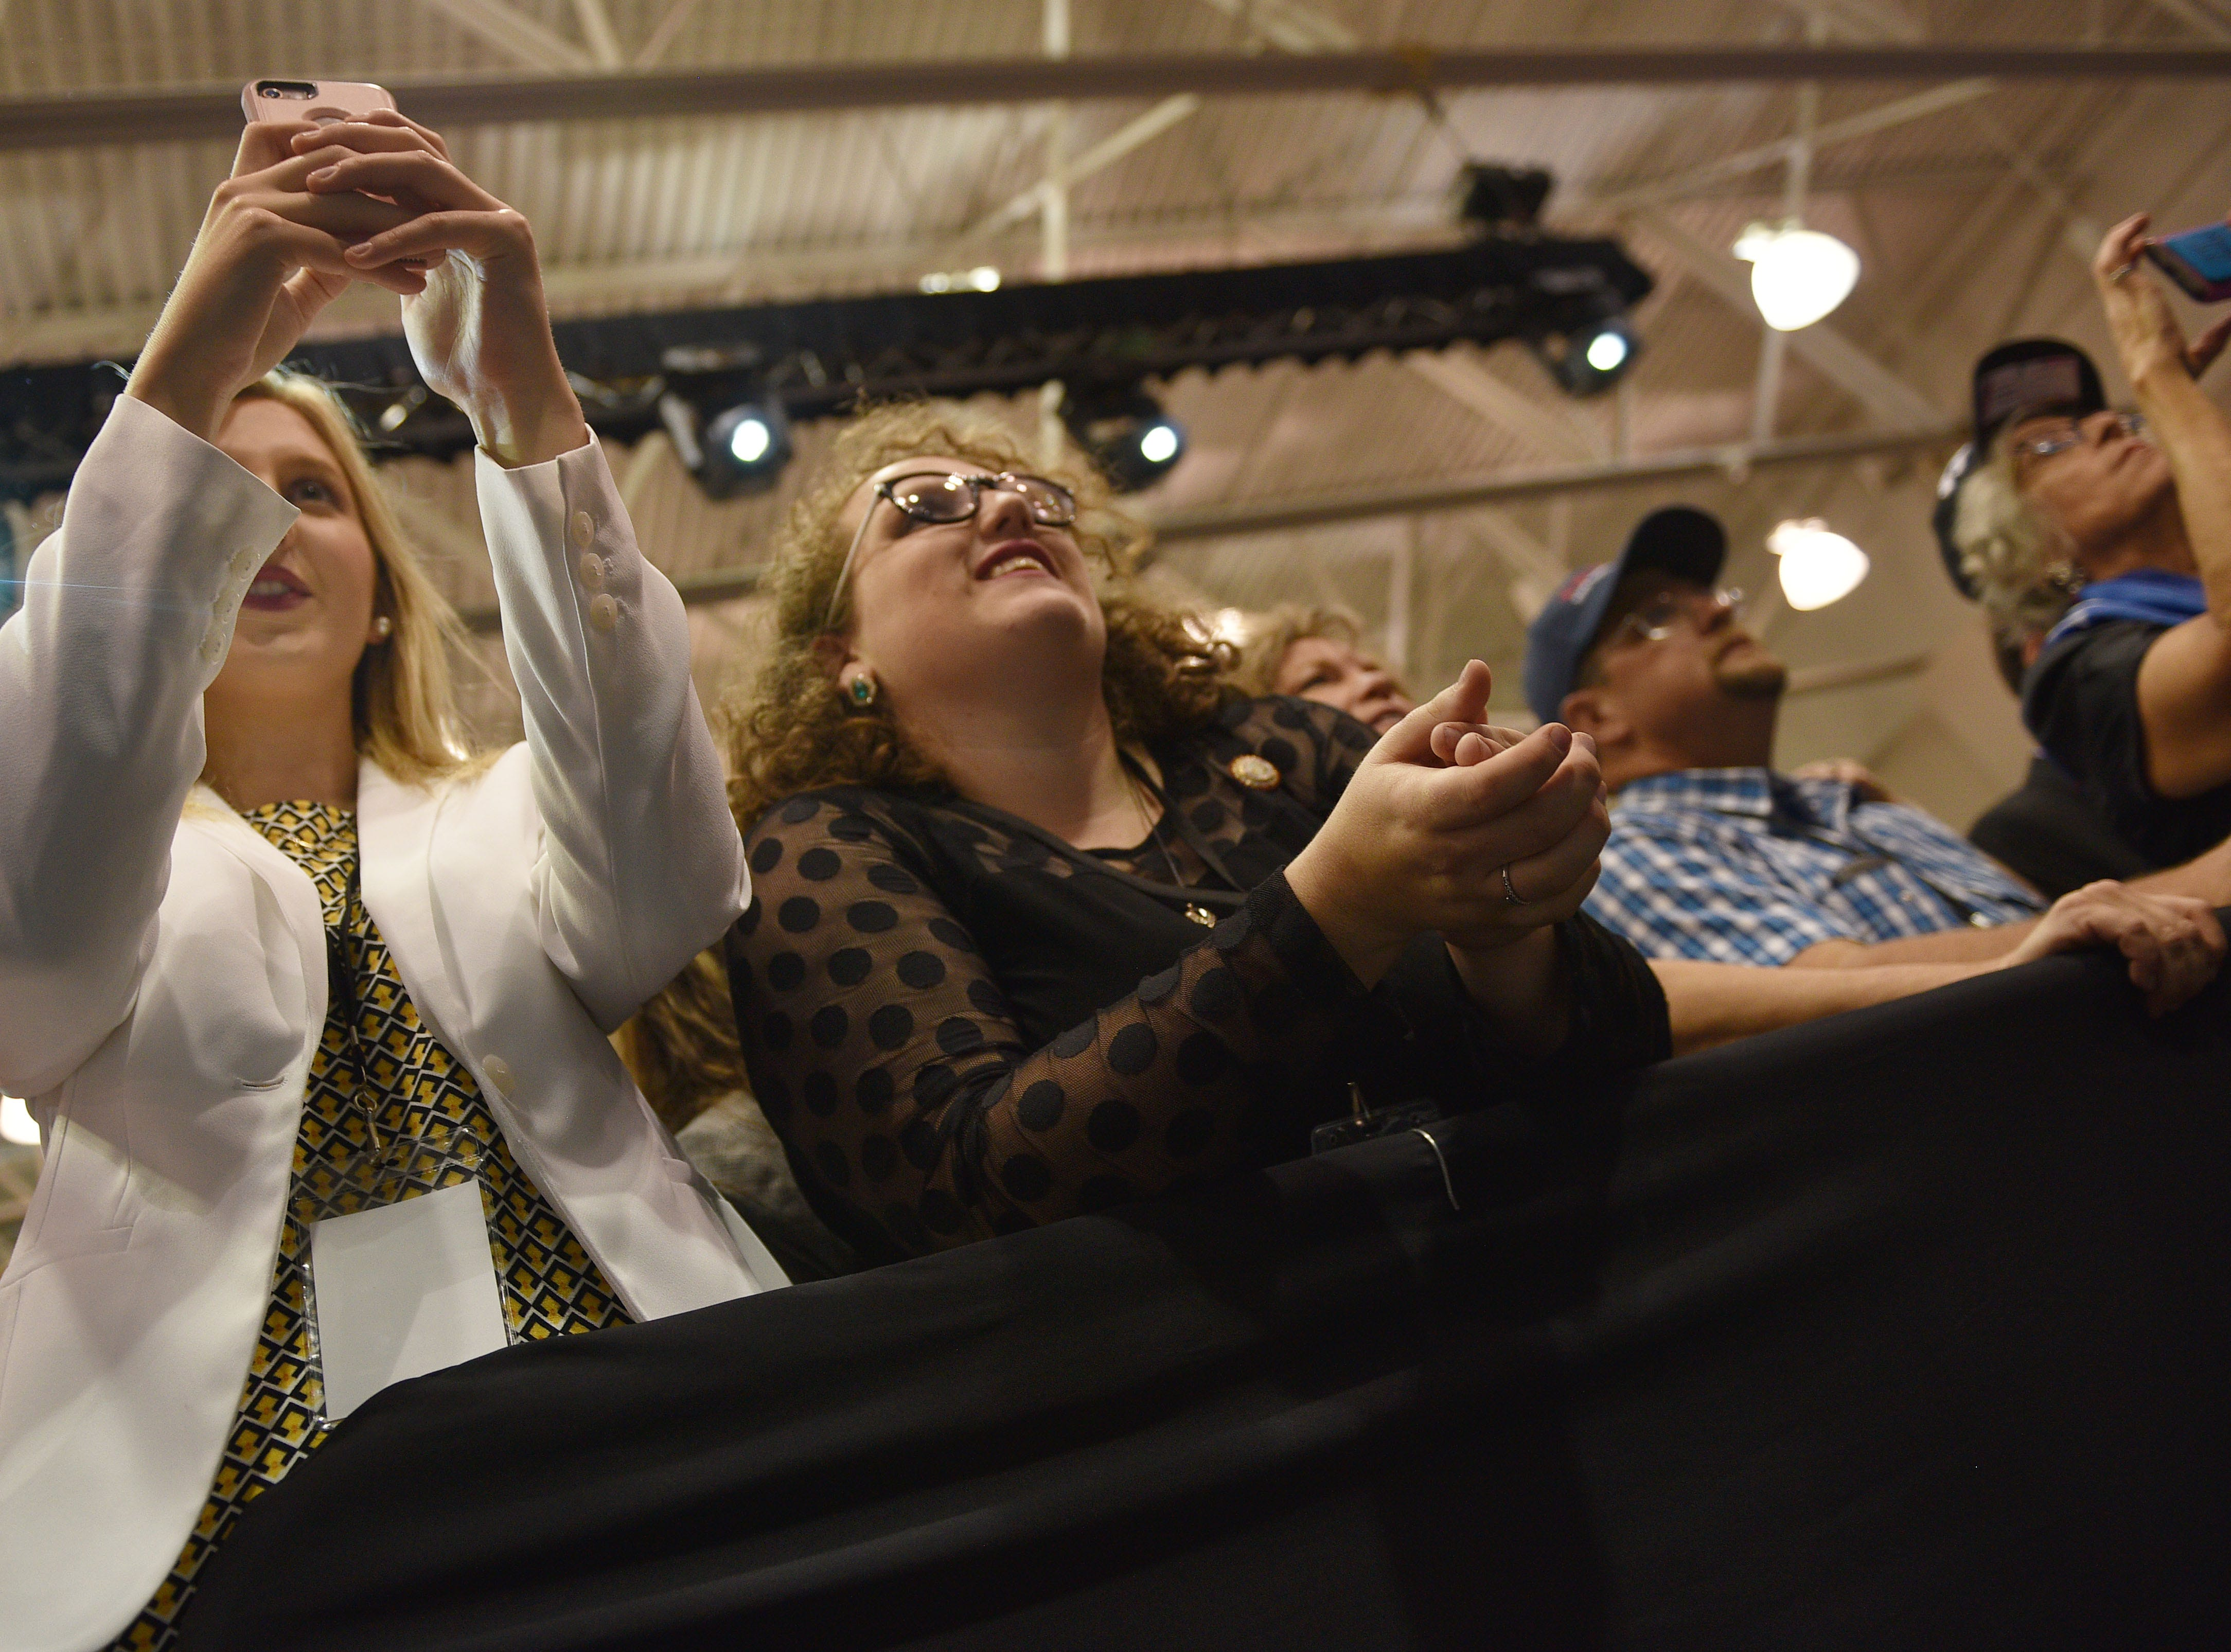 Supporters cheer once President Donald Trump takes the stage Friday, Sept. 7, at the Denny Sanford Premier Center in Sioux Falls.